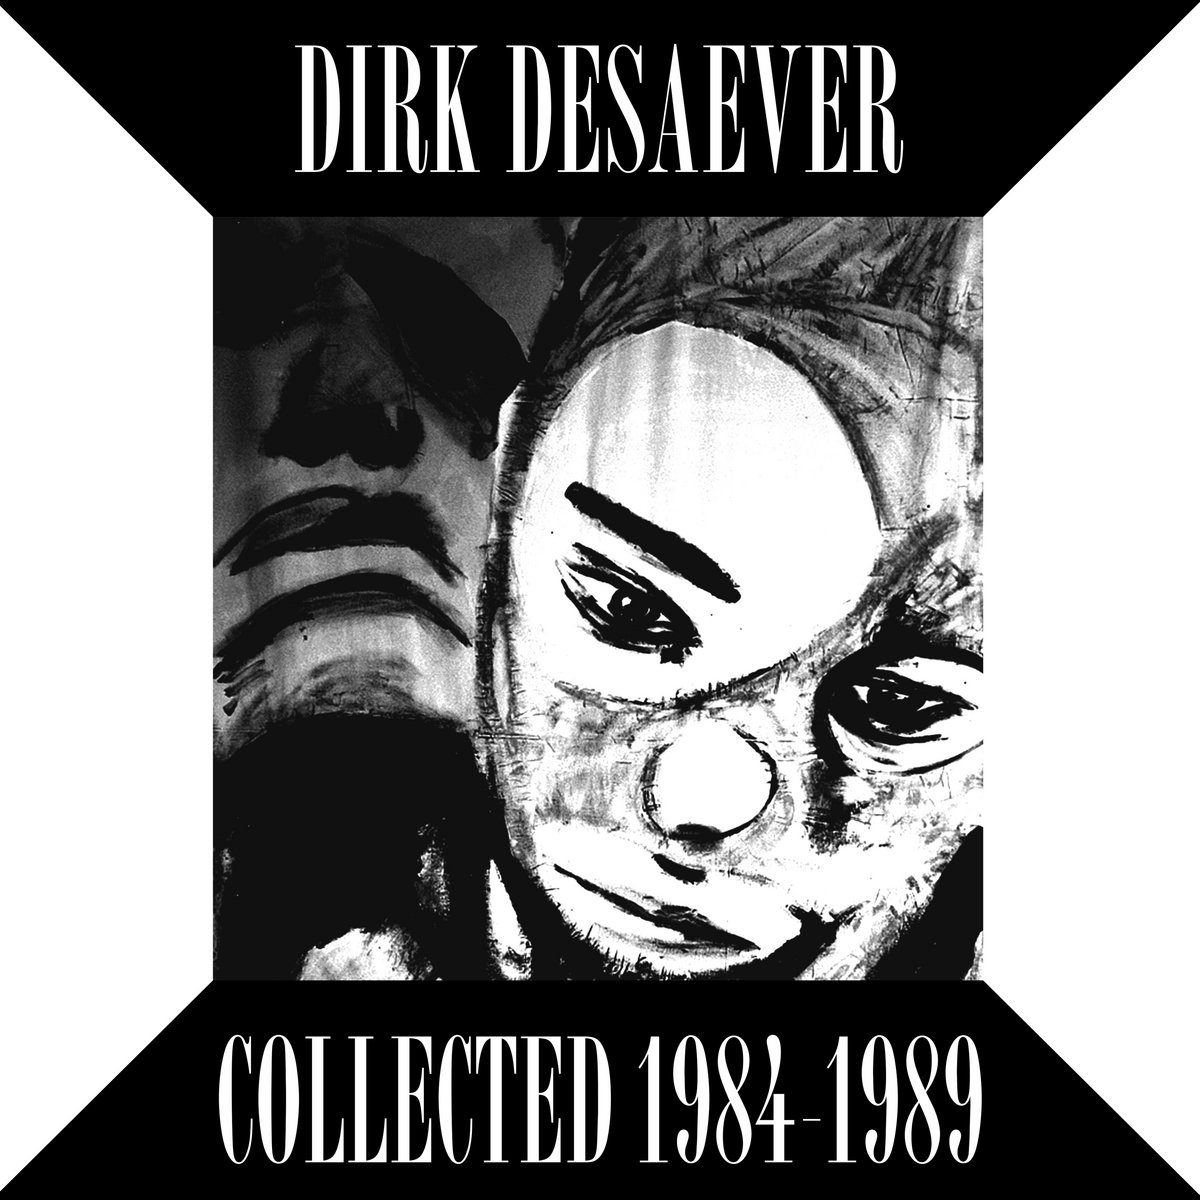 Collected 1984-1989 (Long Play)